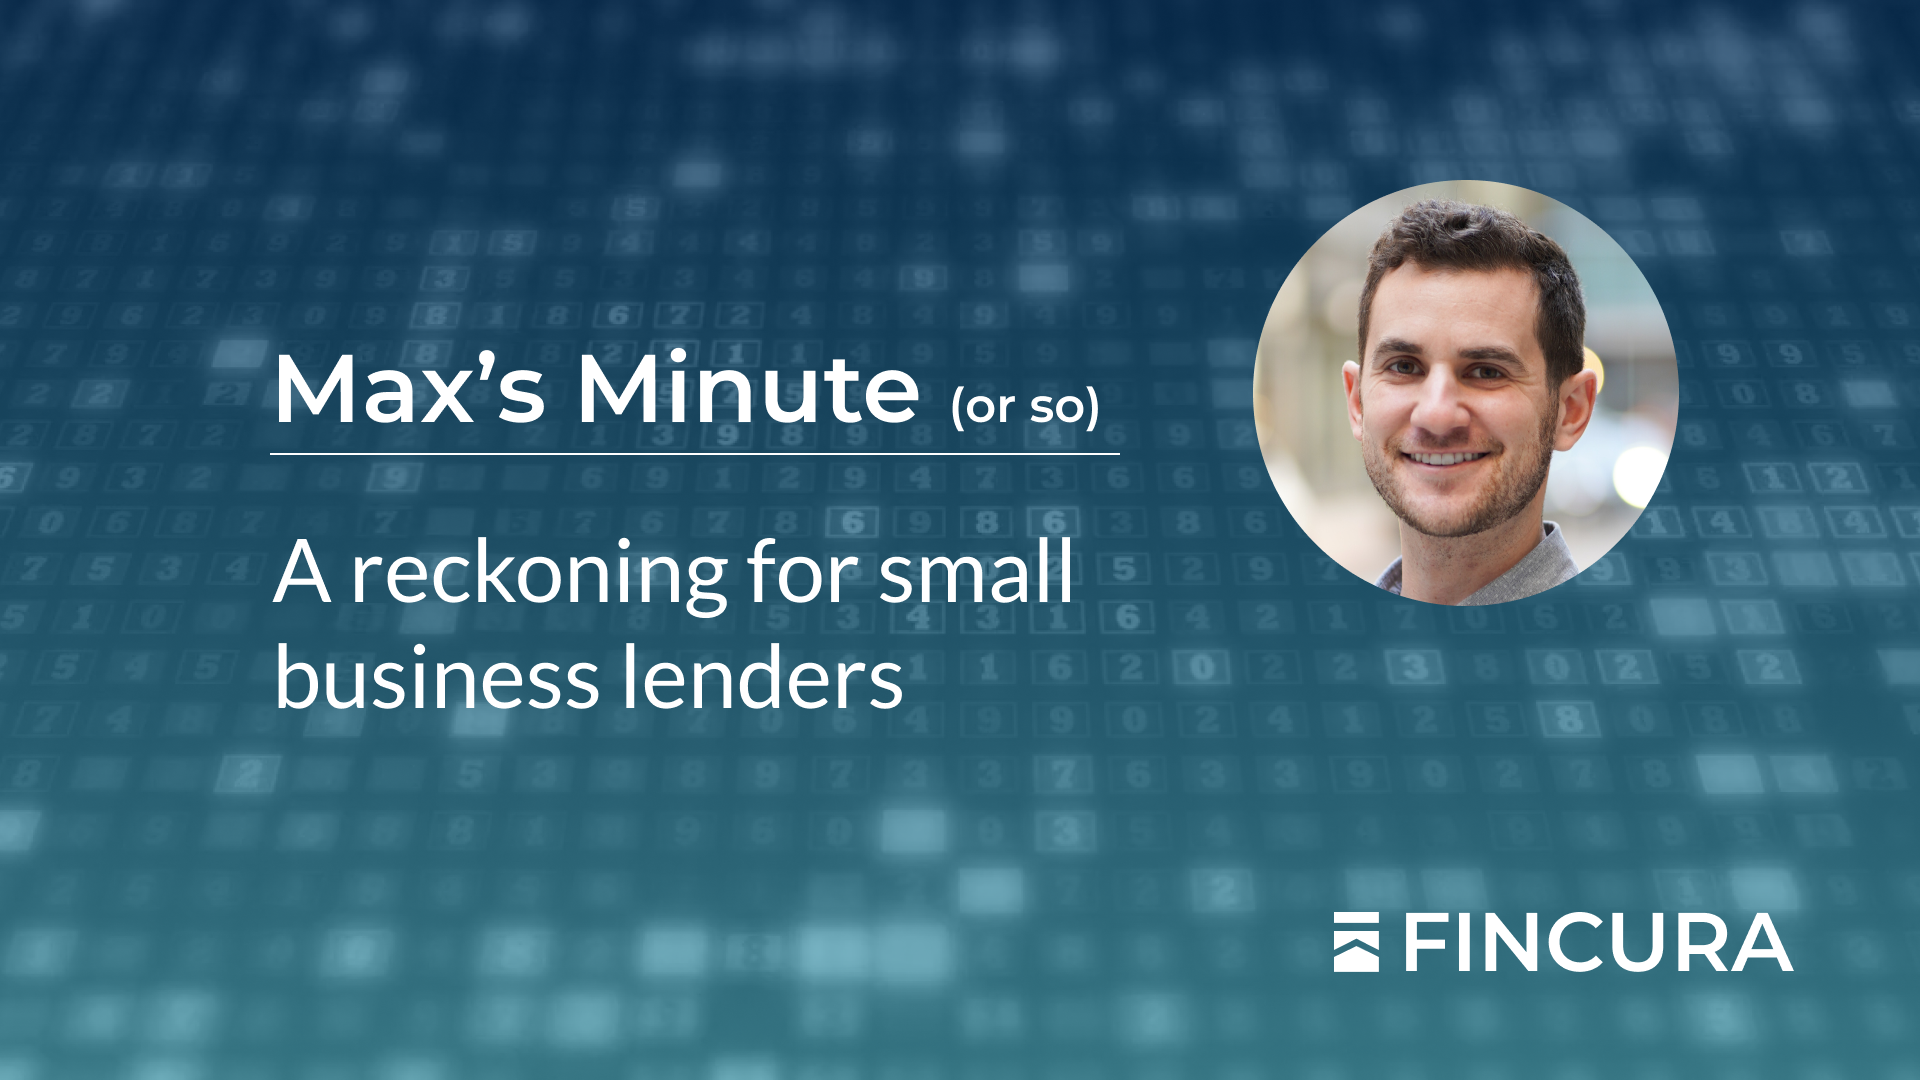 Fincura | A reckoning for small business lenders